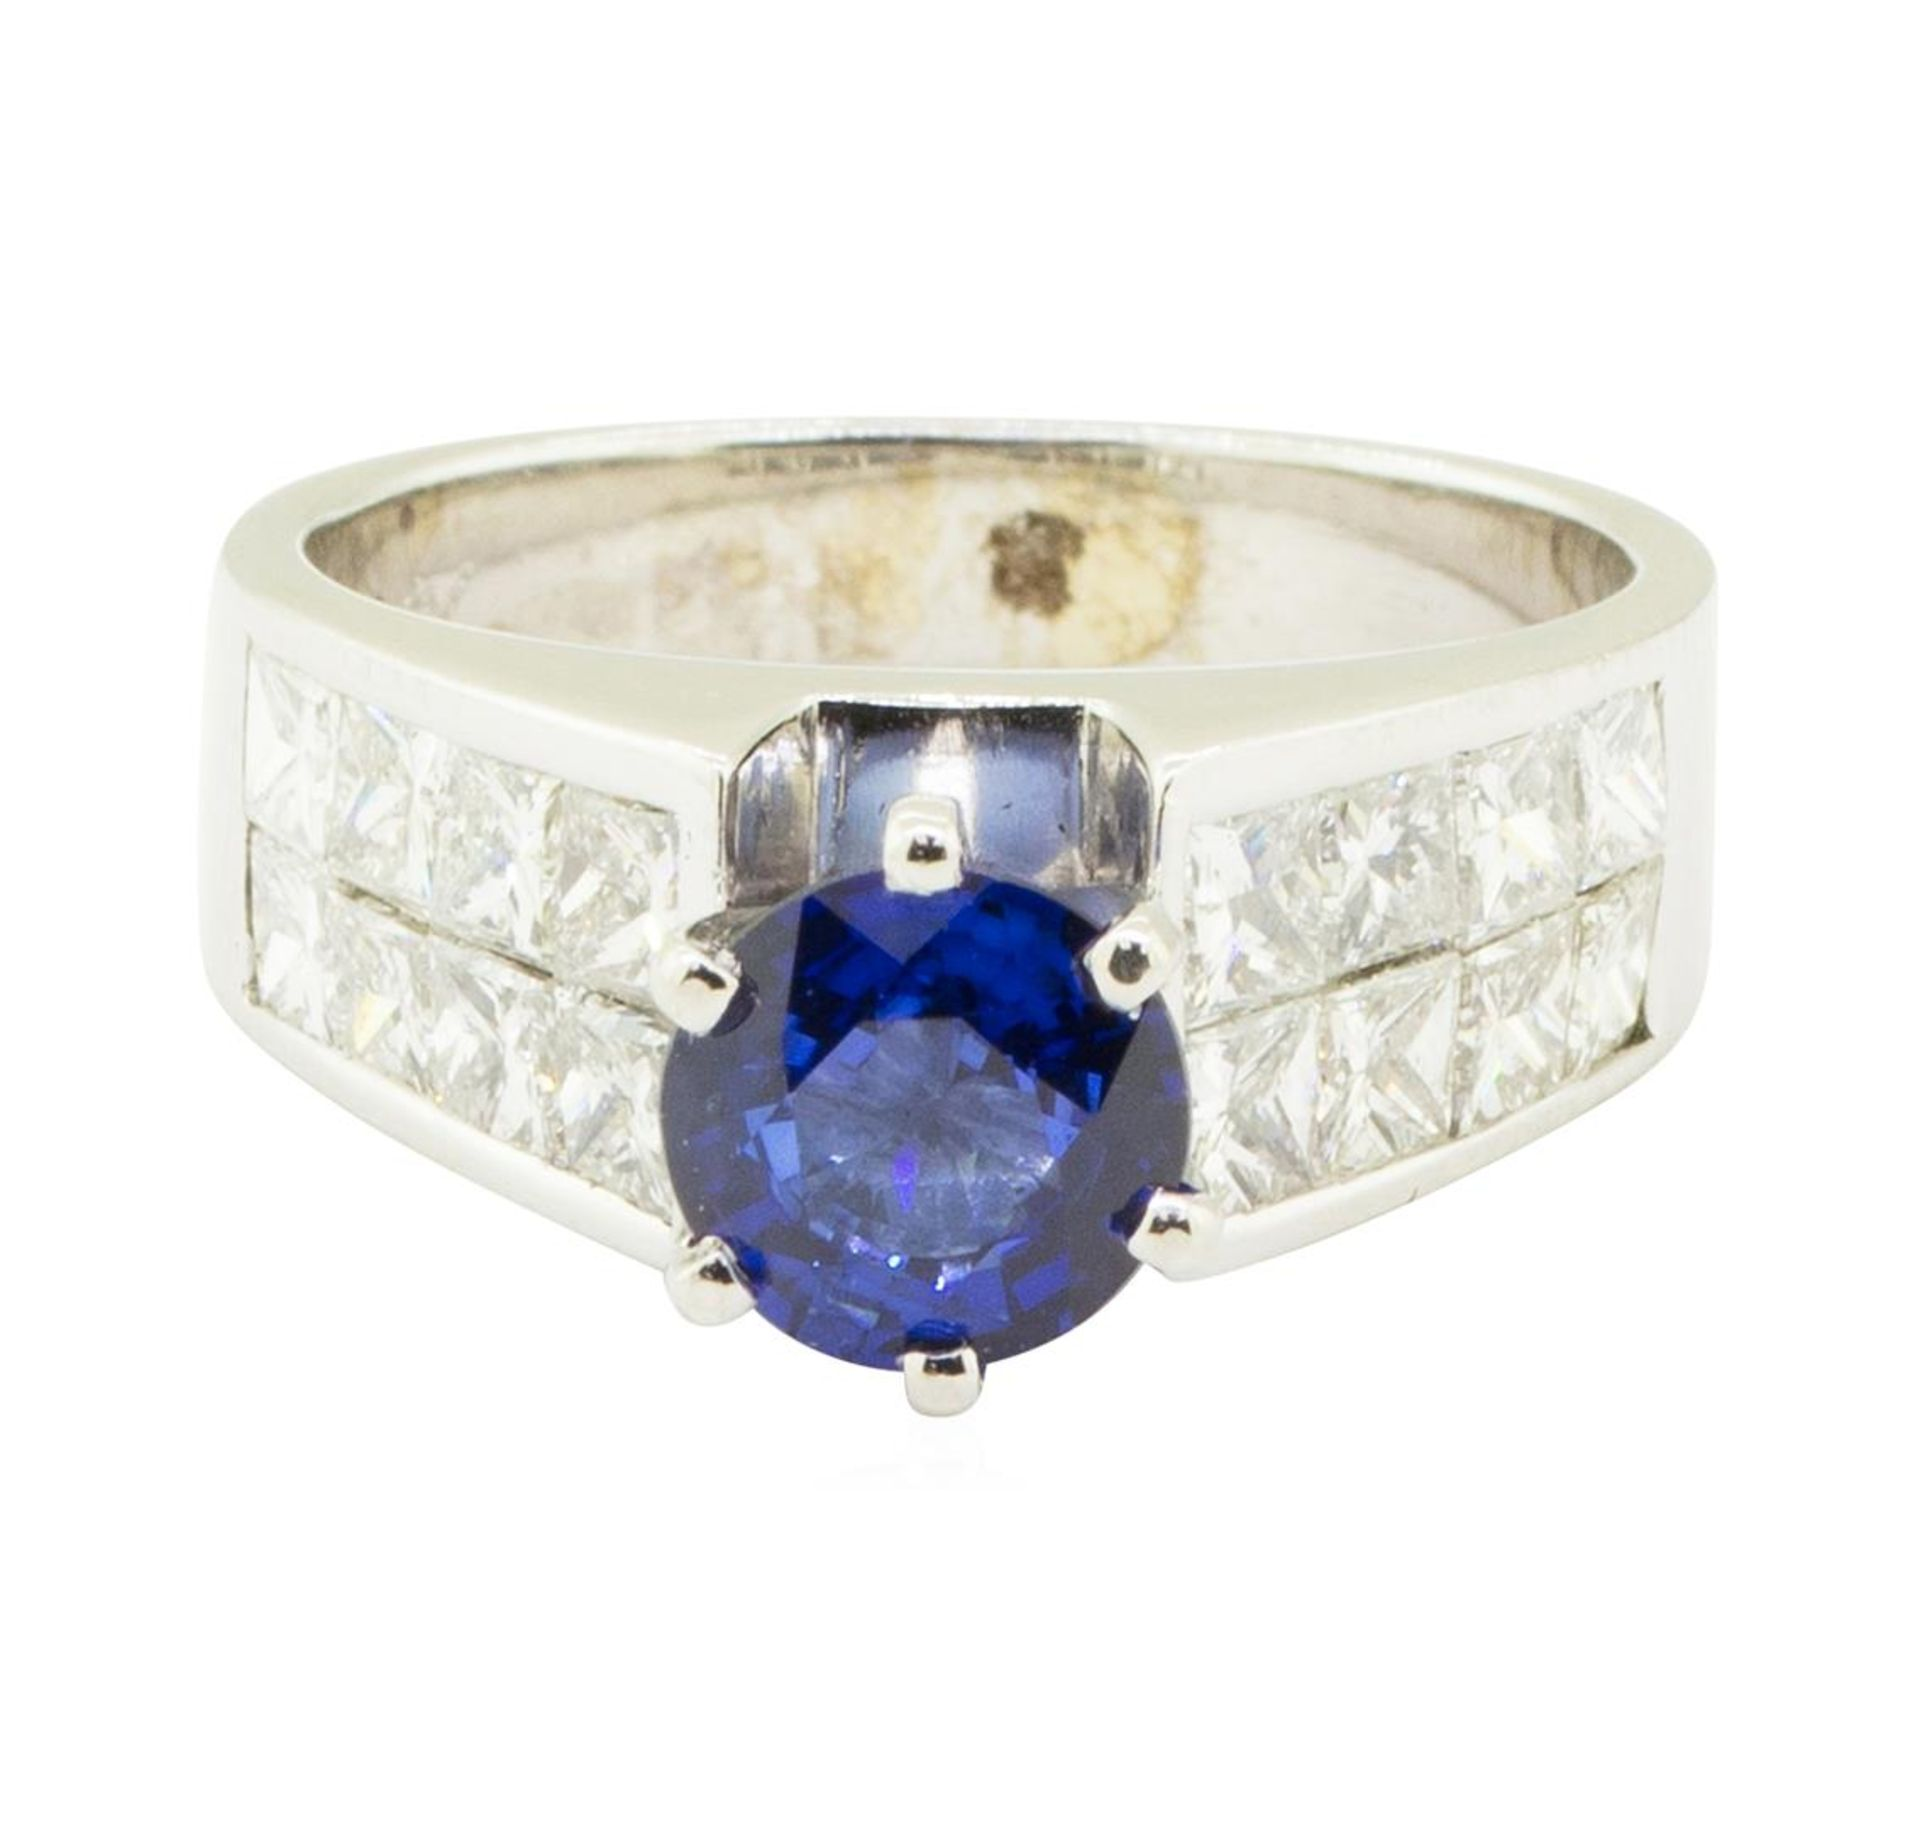 3.15 ctw Round Brilliant Blue Sapphire And Diamond Ring - 14KT White Gold - Image 2 of 5